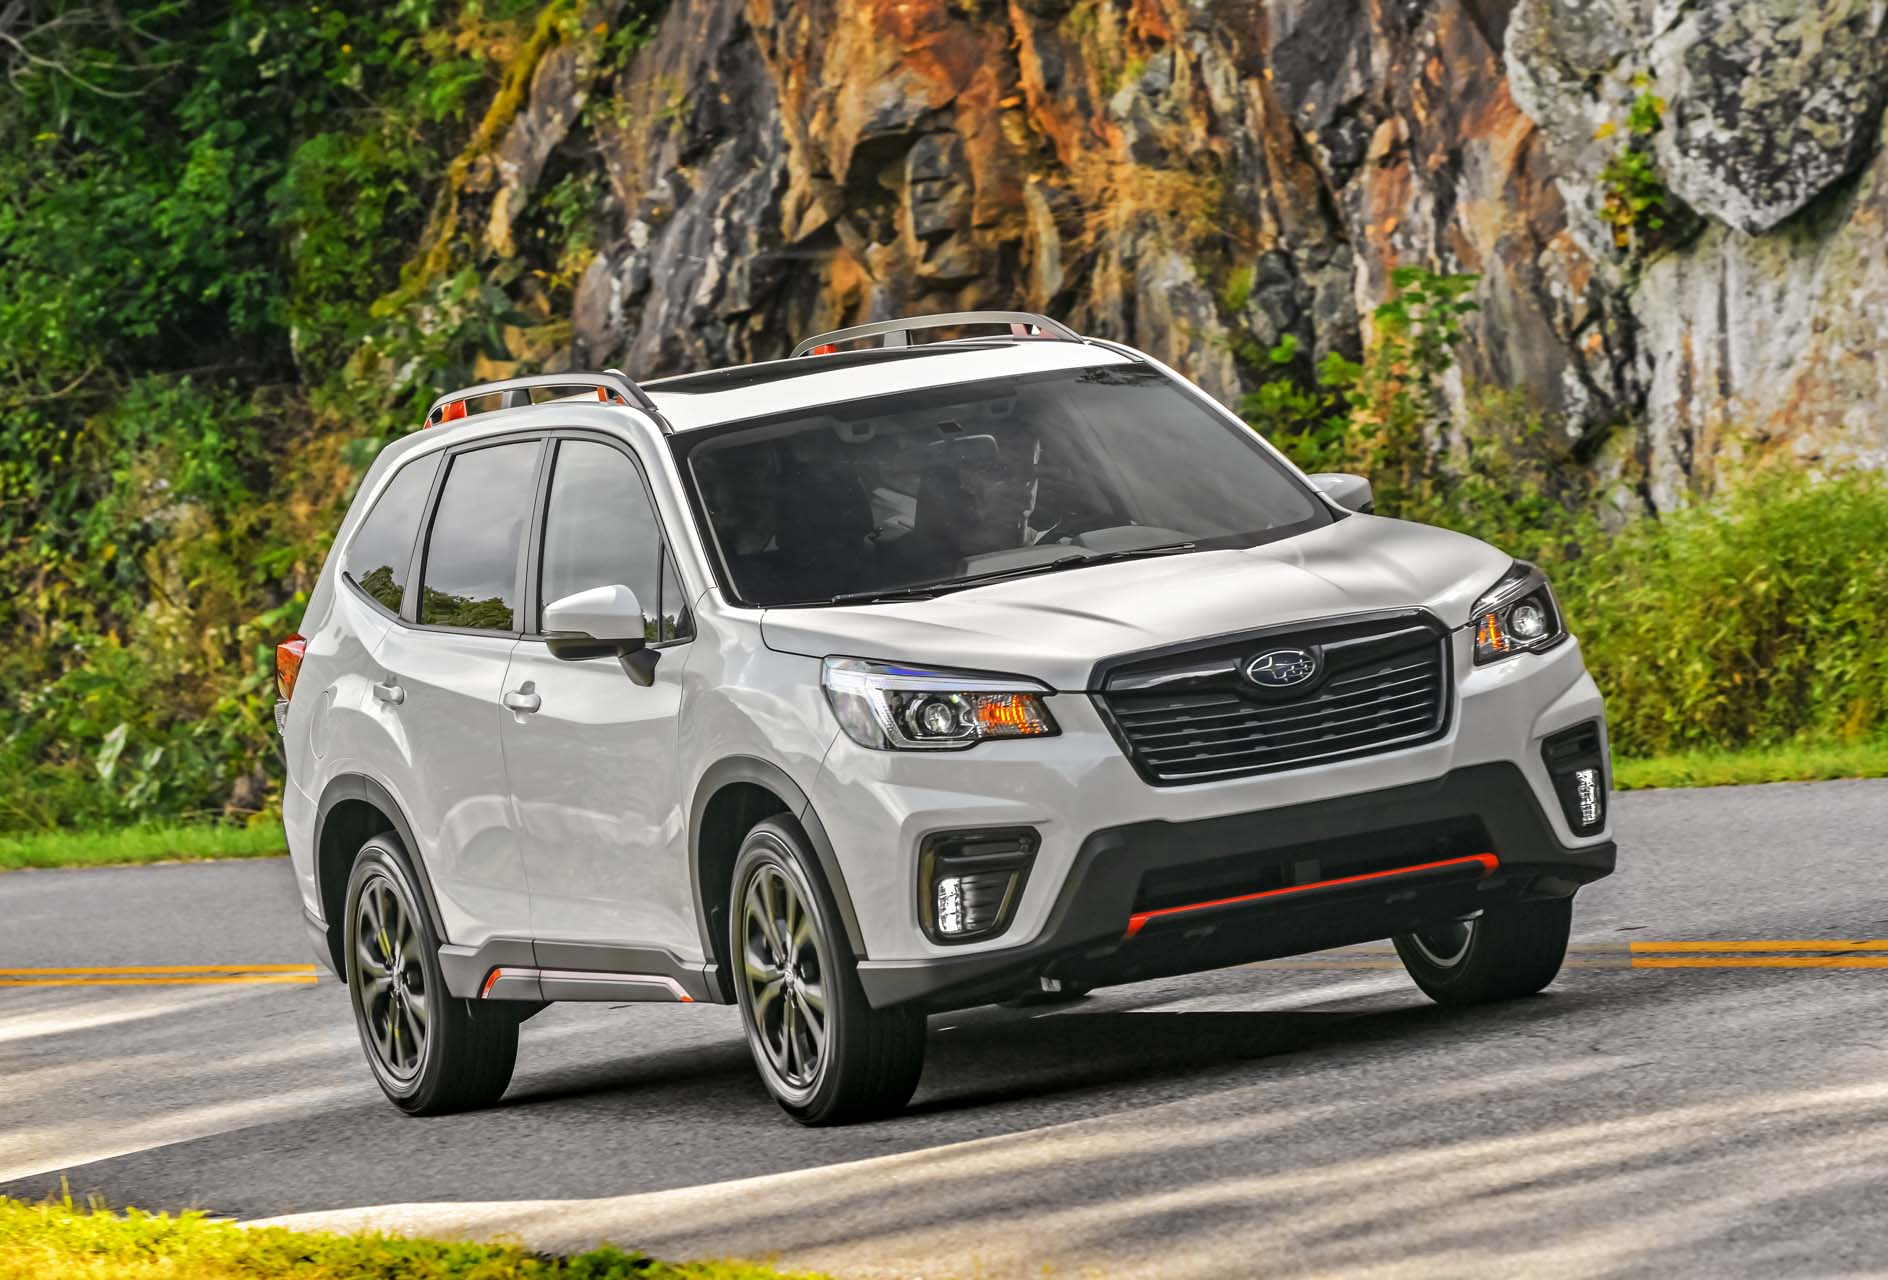 Compare Subaru Models >> 2019 Jeep Cherokee Vs 2019 Subaru Forester Compare Cars